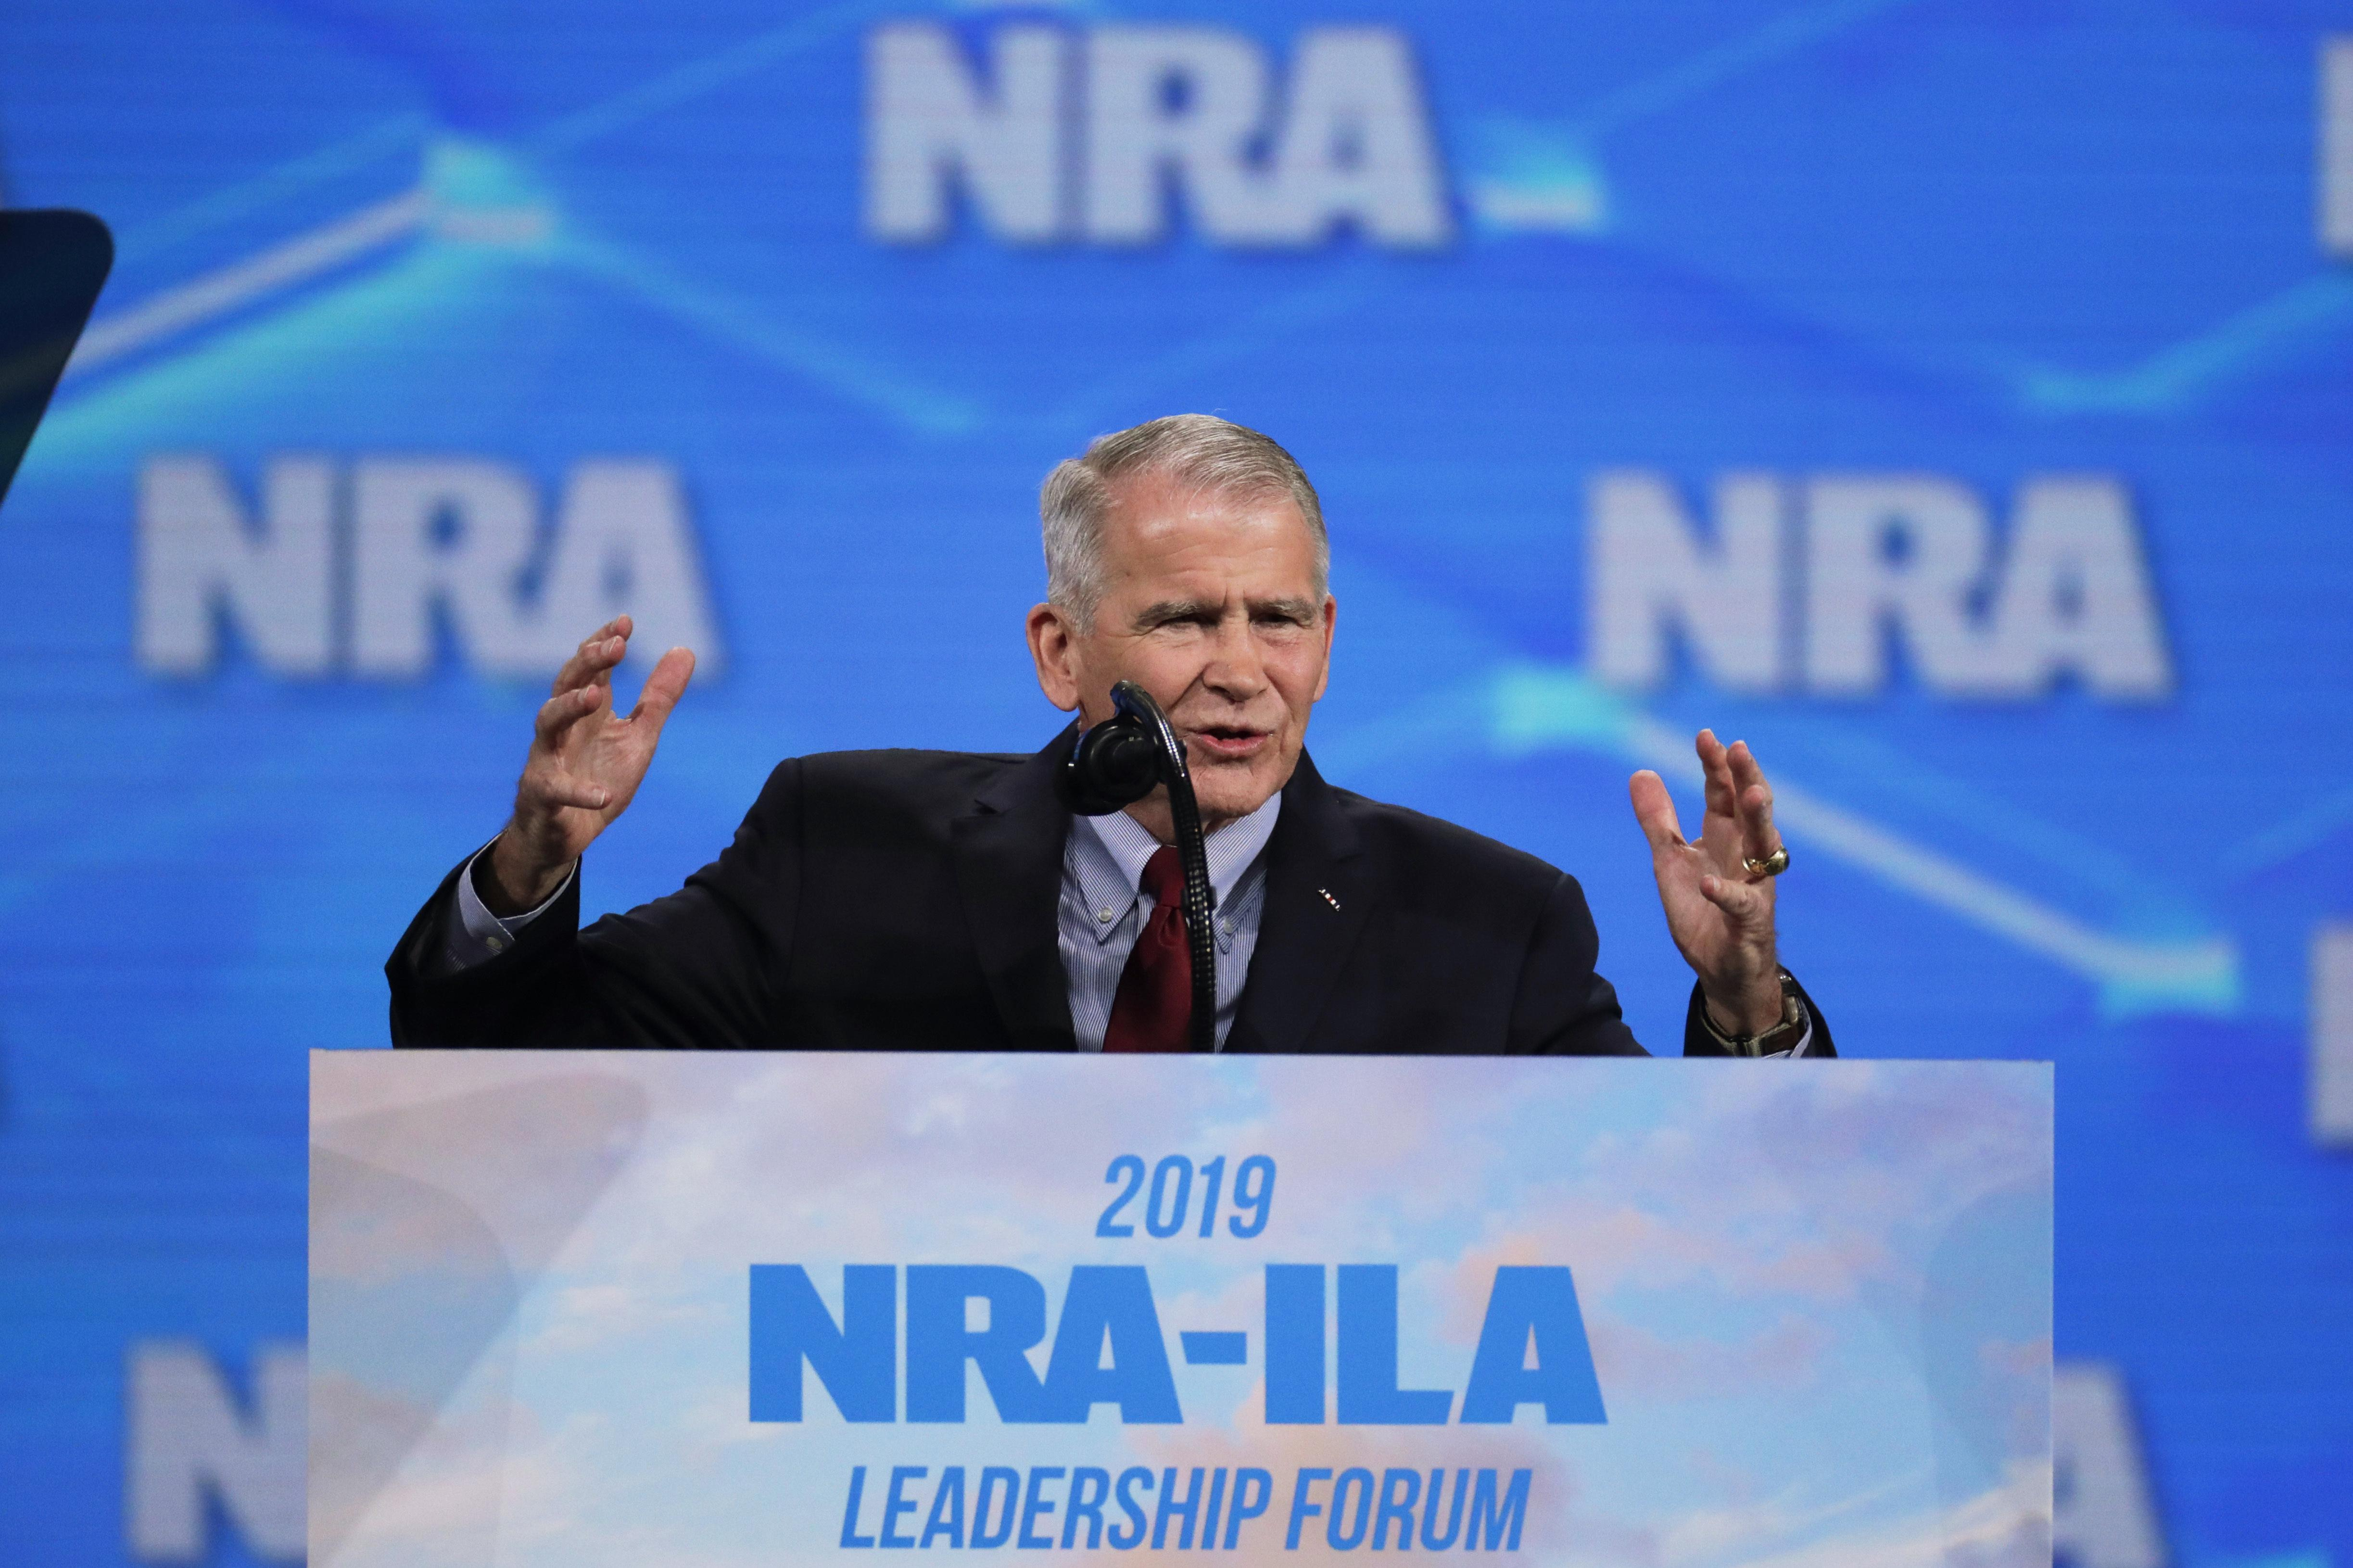 Oliver North out as NRA president after leadership dispute ...